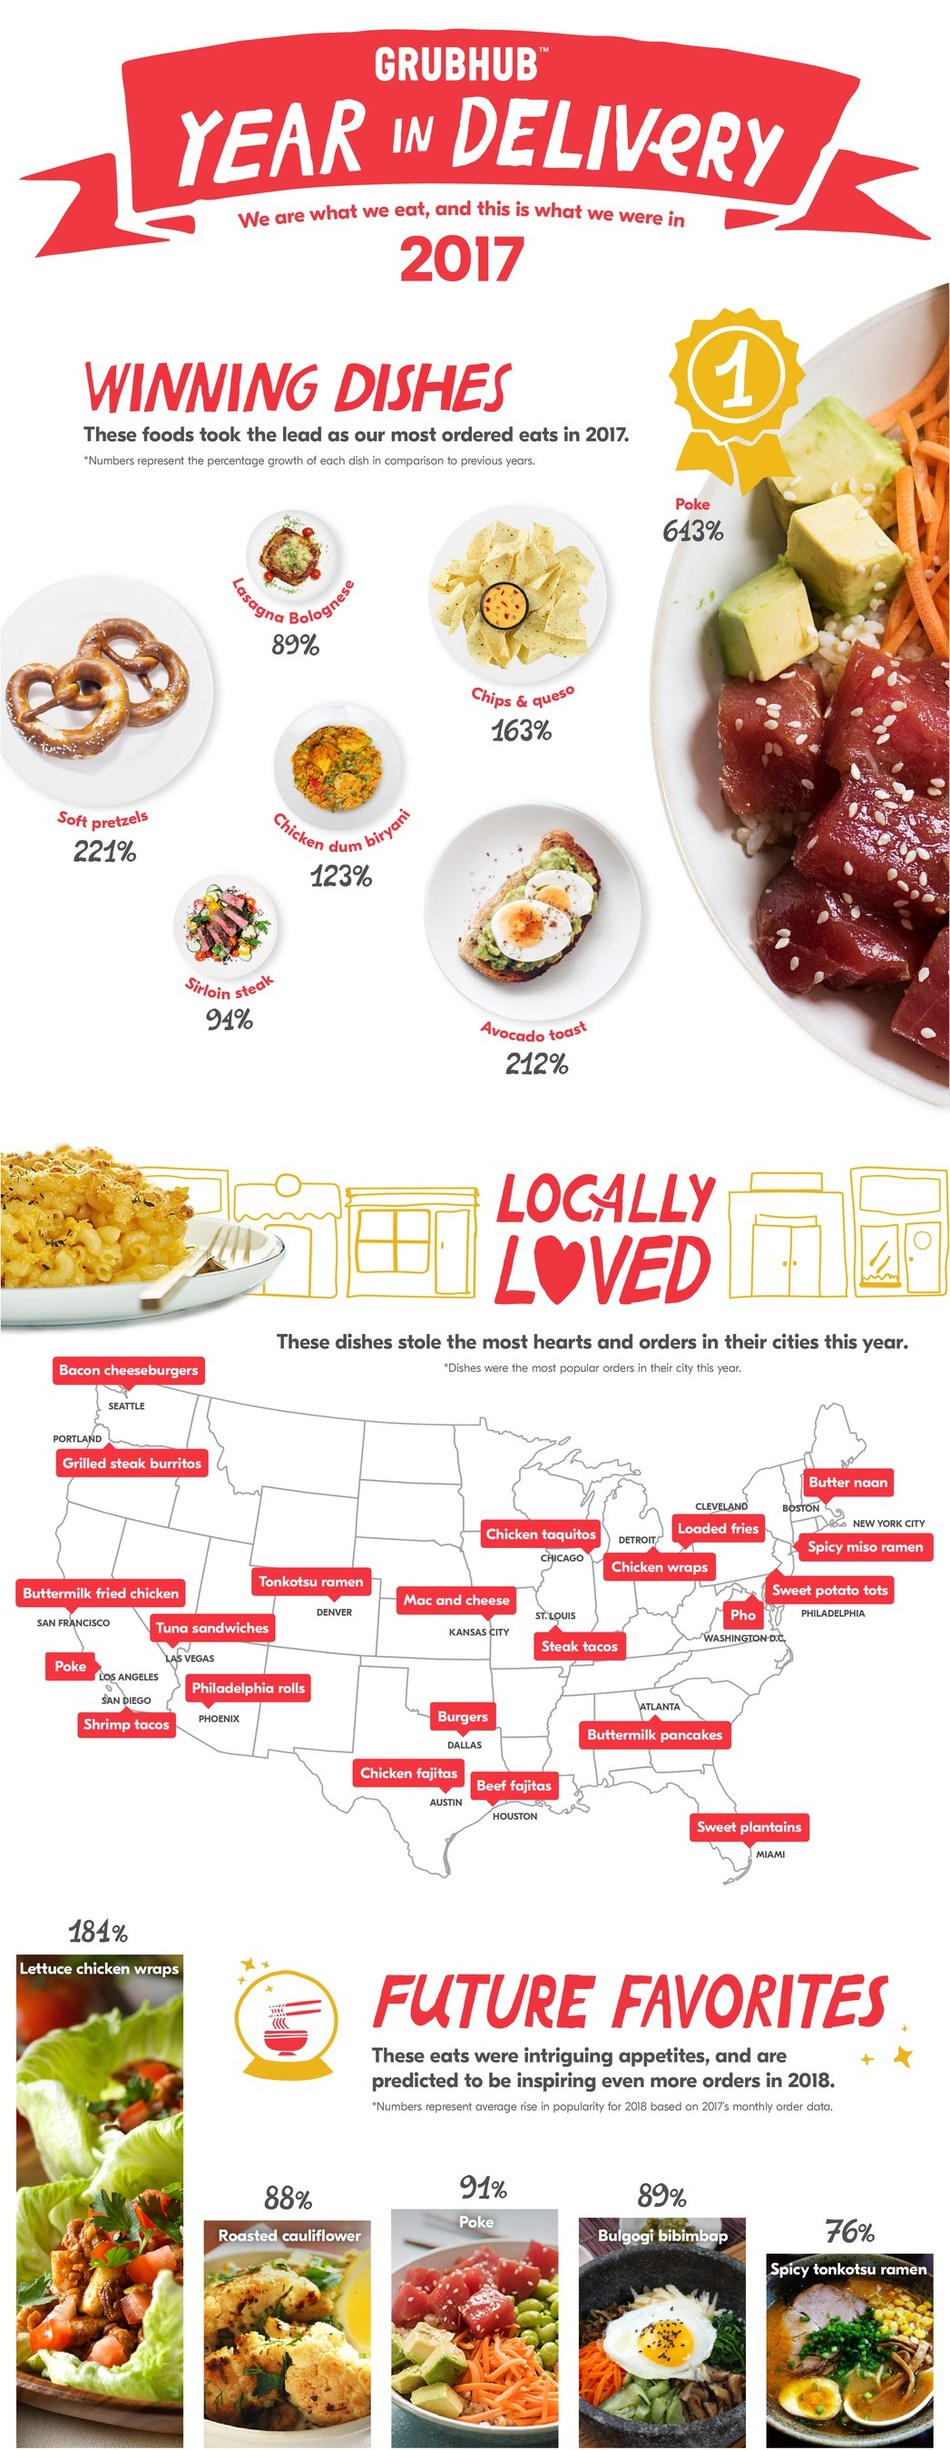 Grubhub's 'Year In Delivery' depicts 2017's top food trends and predictions for 2018.